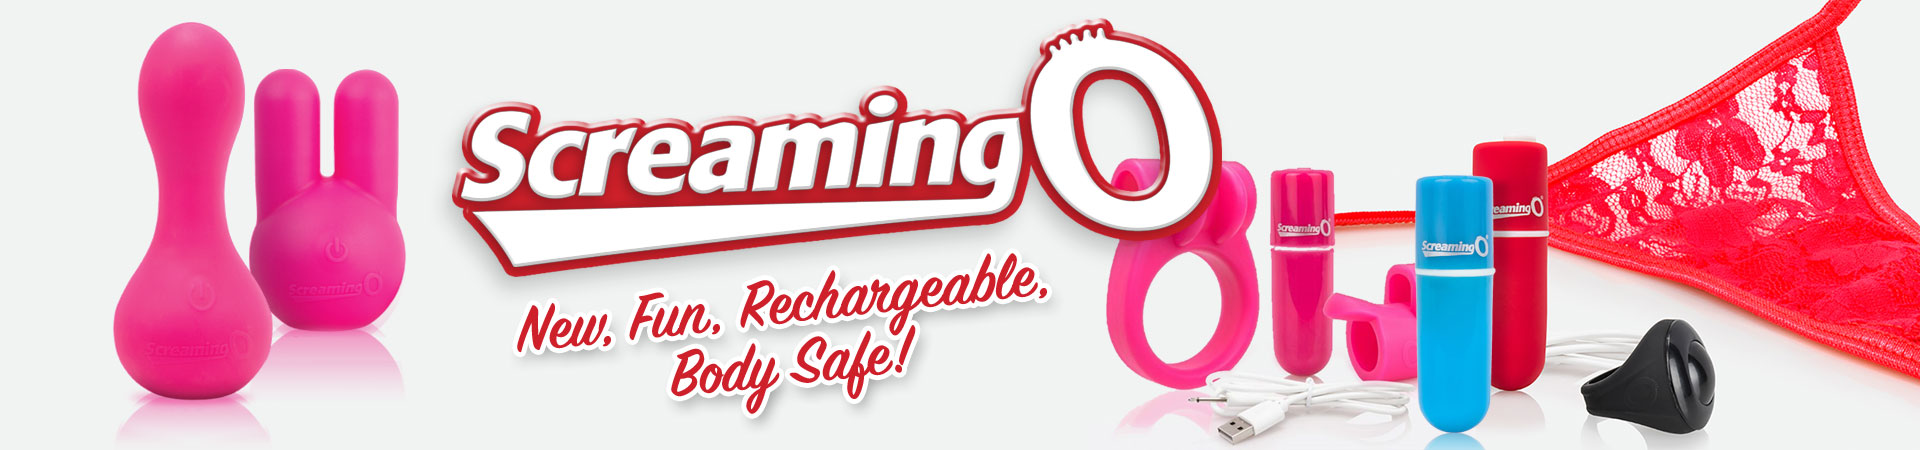 New, Fun, Rechargeable, Body Safe - Screaming O!